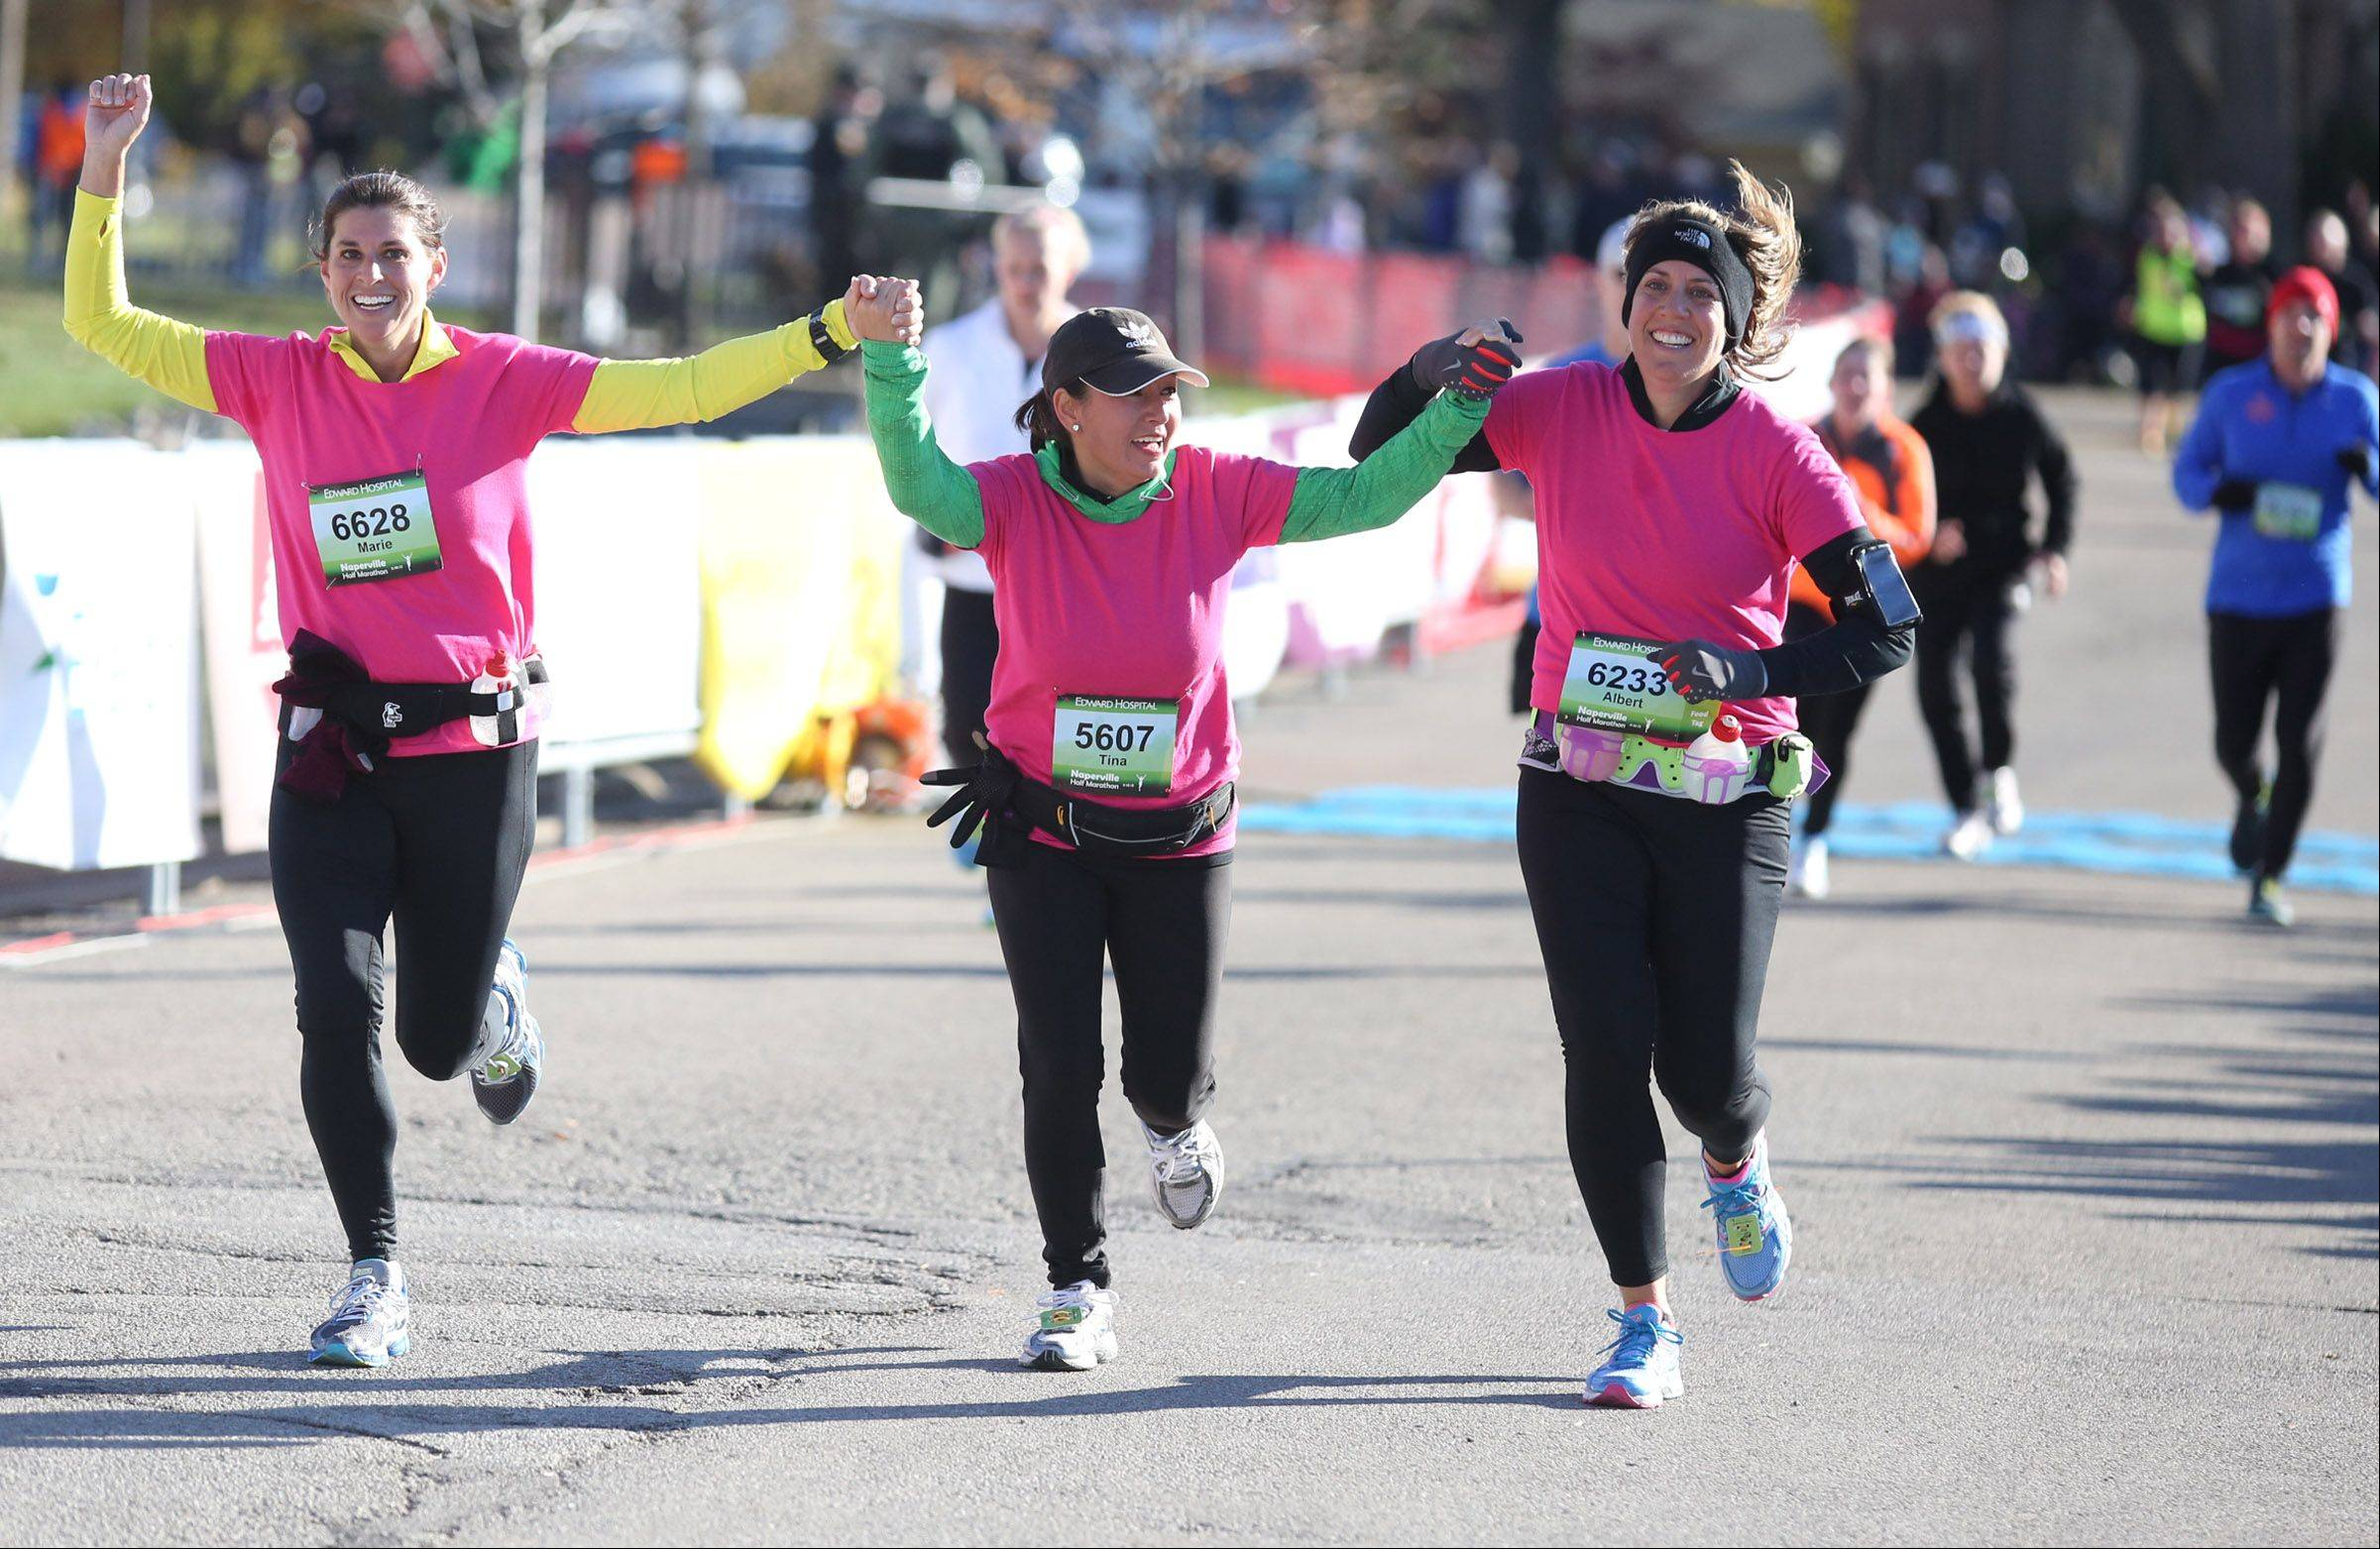 Runners about to cross the finish line in Sunday's half marathon in Naperville.